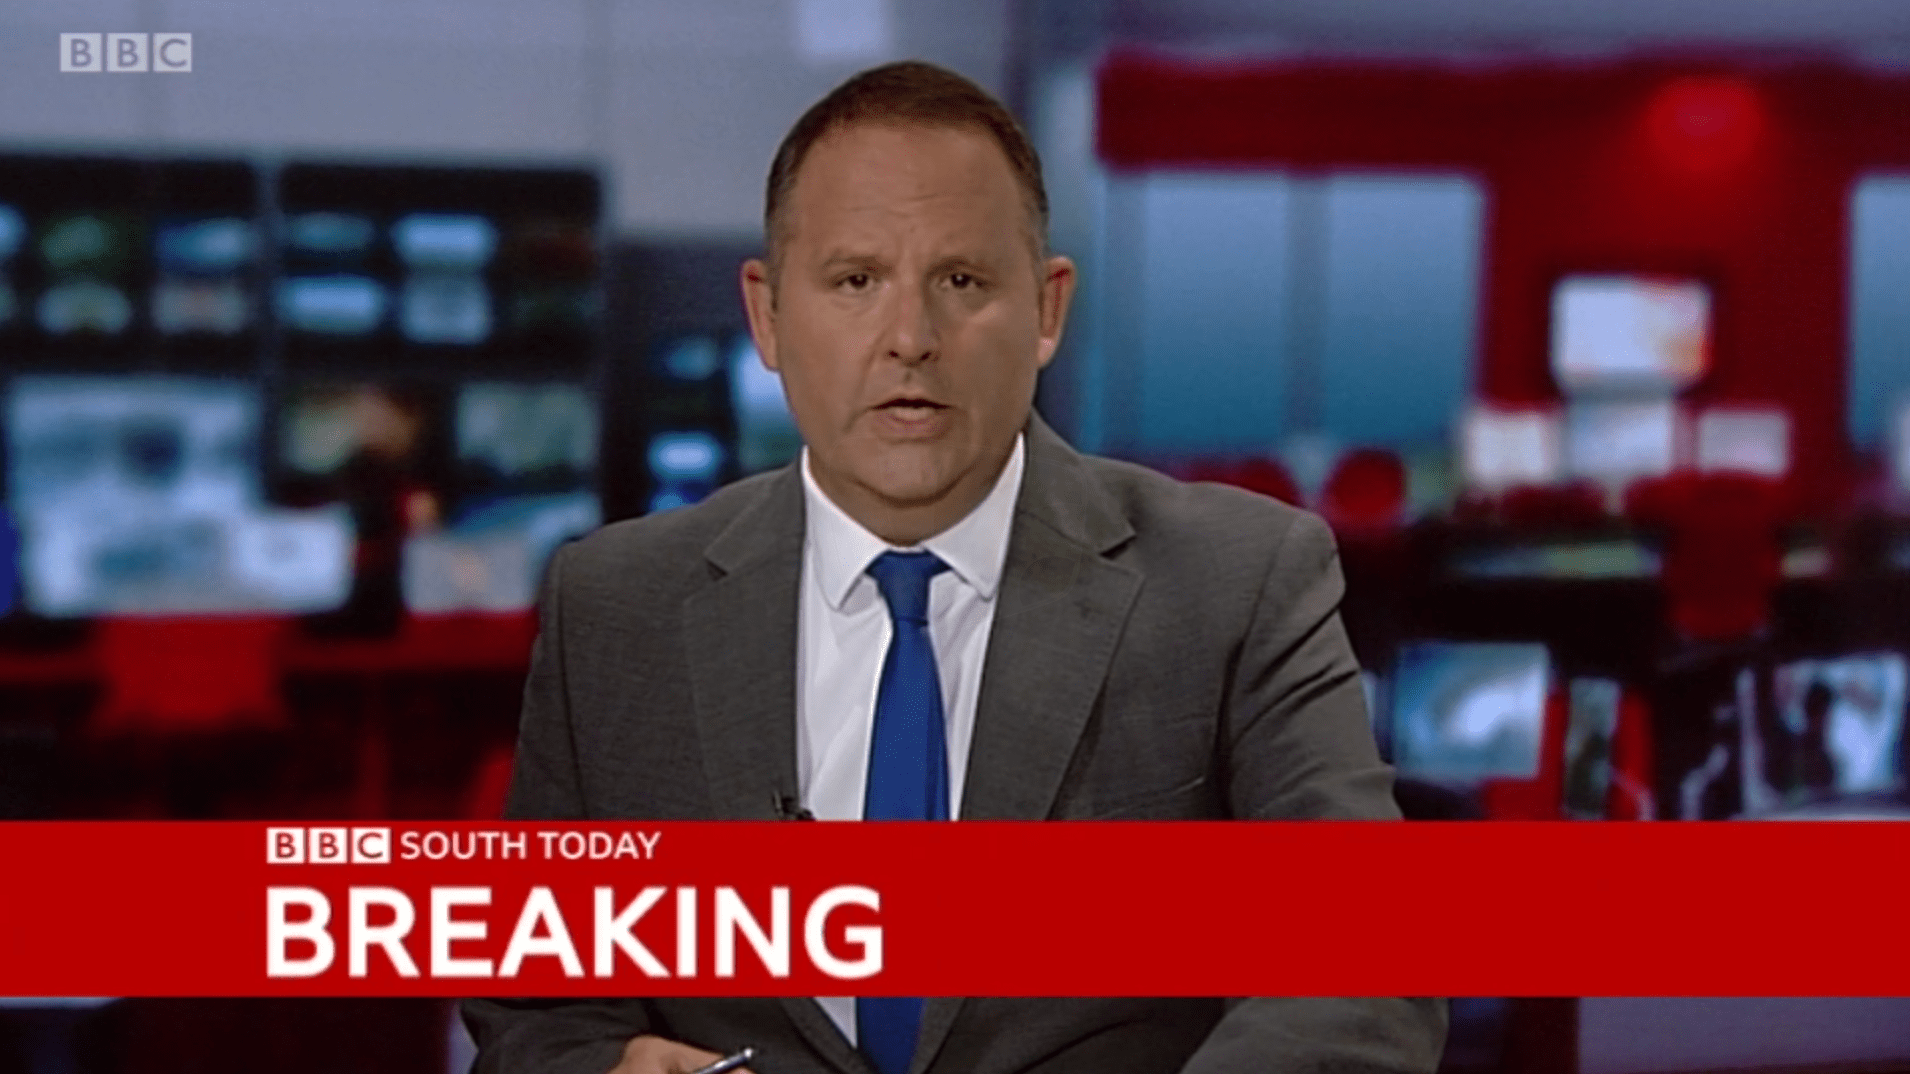 PICTURED: BBC South Today (Oxford) lower-third and studio presentation. Presenter: Jerome Sale.